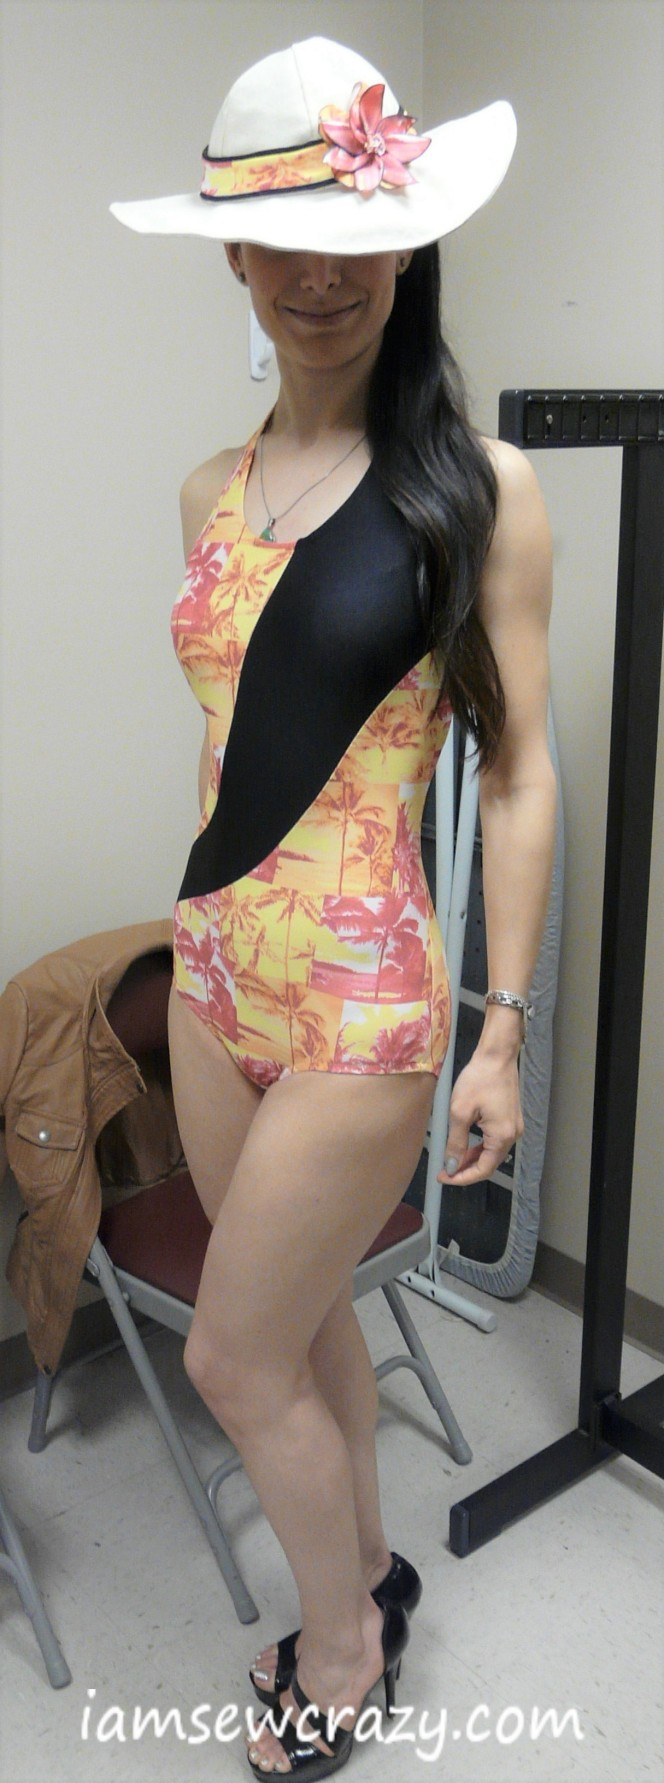 Fashion show swimsuit fitting